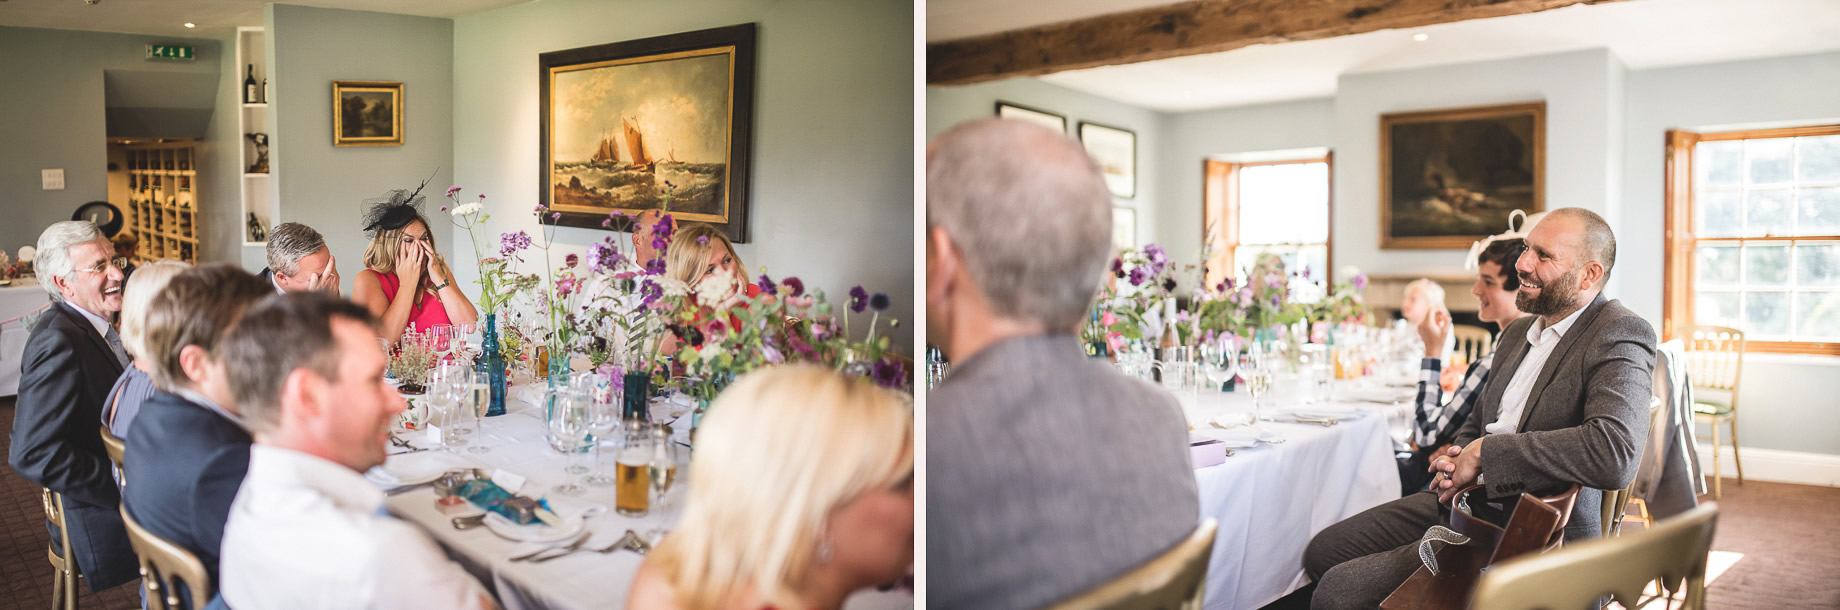 Tess and Paul's Wedding at The Inn at Whitewell 111